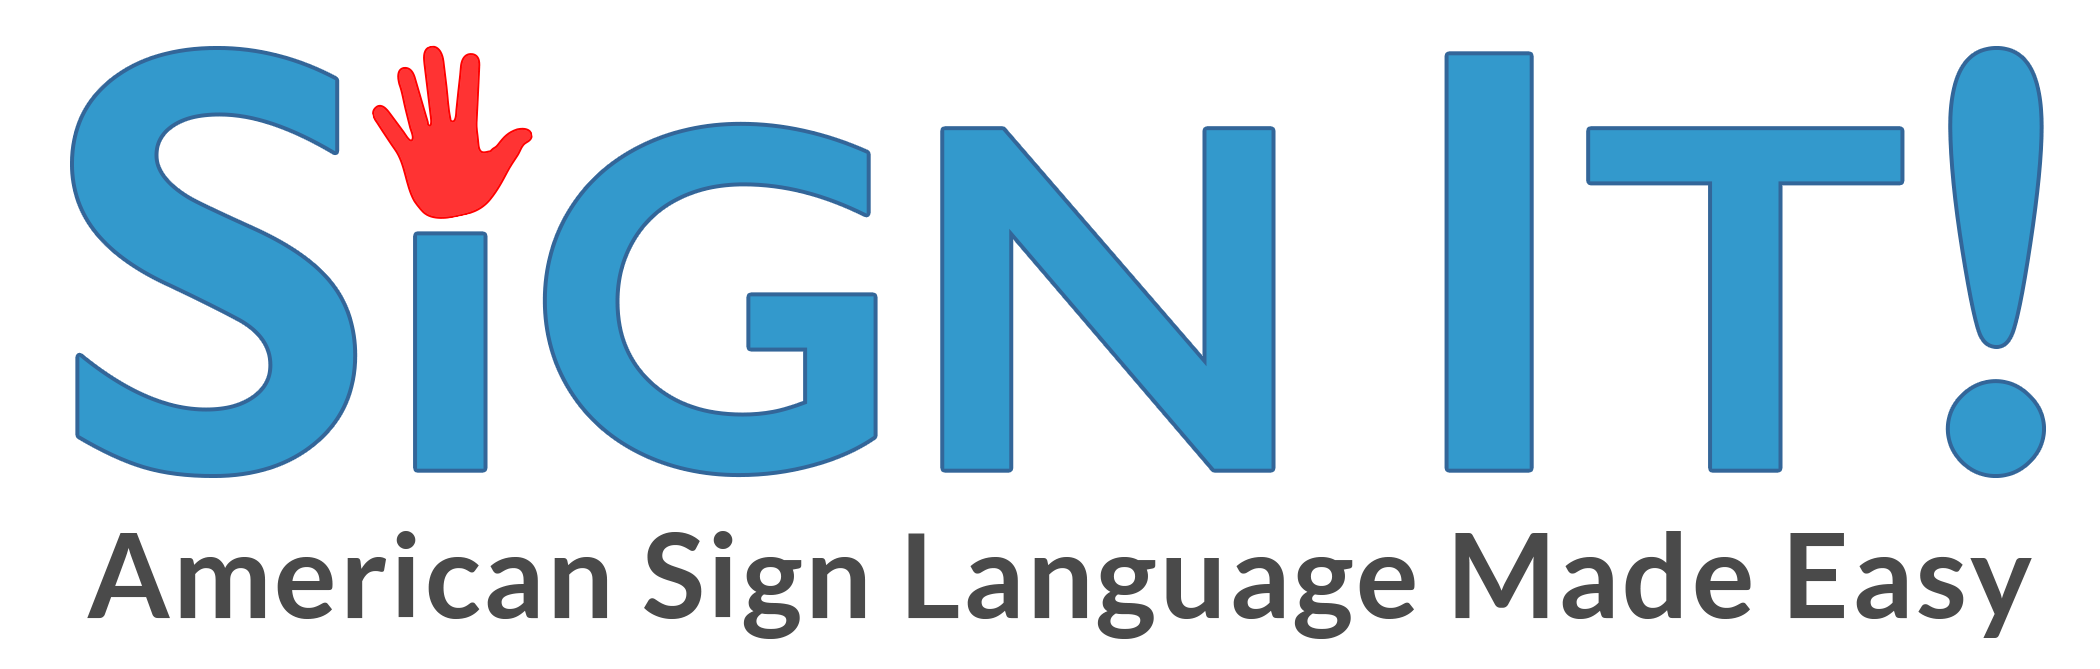 Sign It! American Sign Language Made Easy (home page)